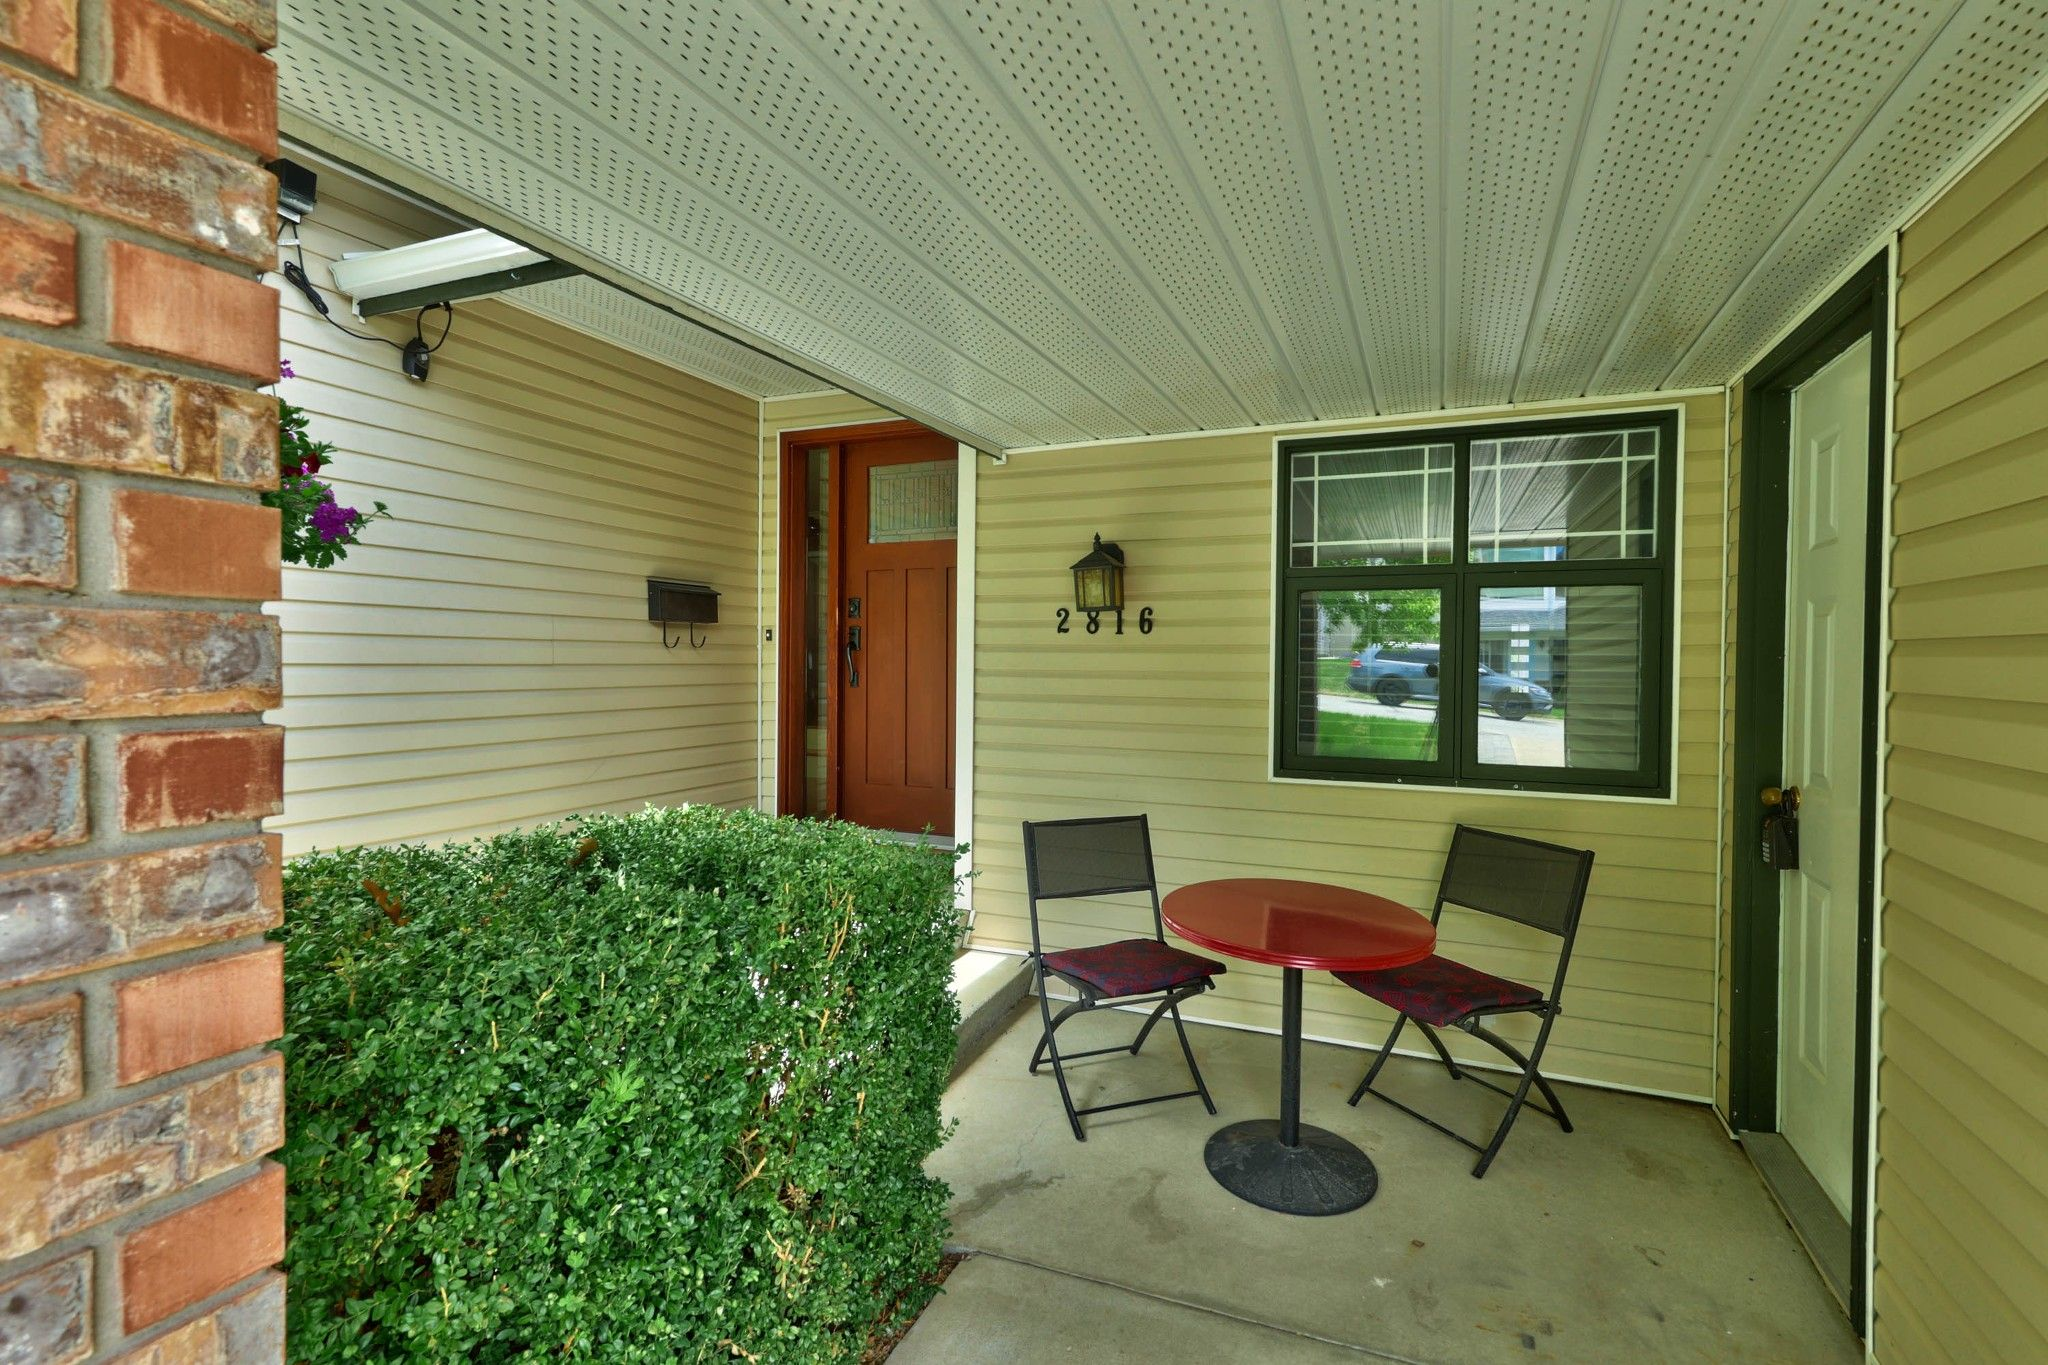 Photo 5: Photos: 2816 Capilano Drive in Kamloops: Juniper Heights House for sale : MLS®# 162002